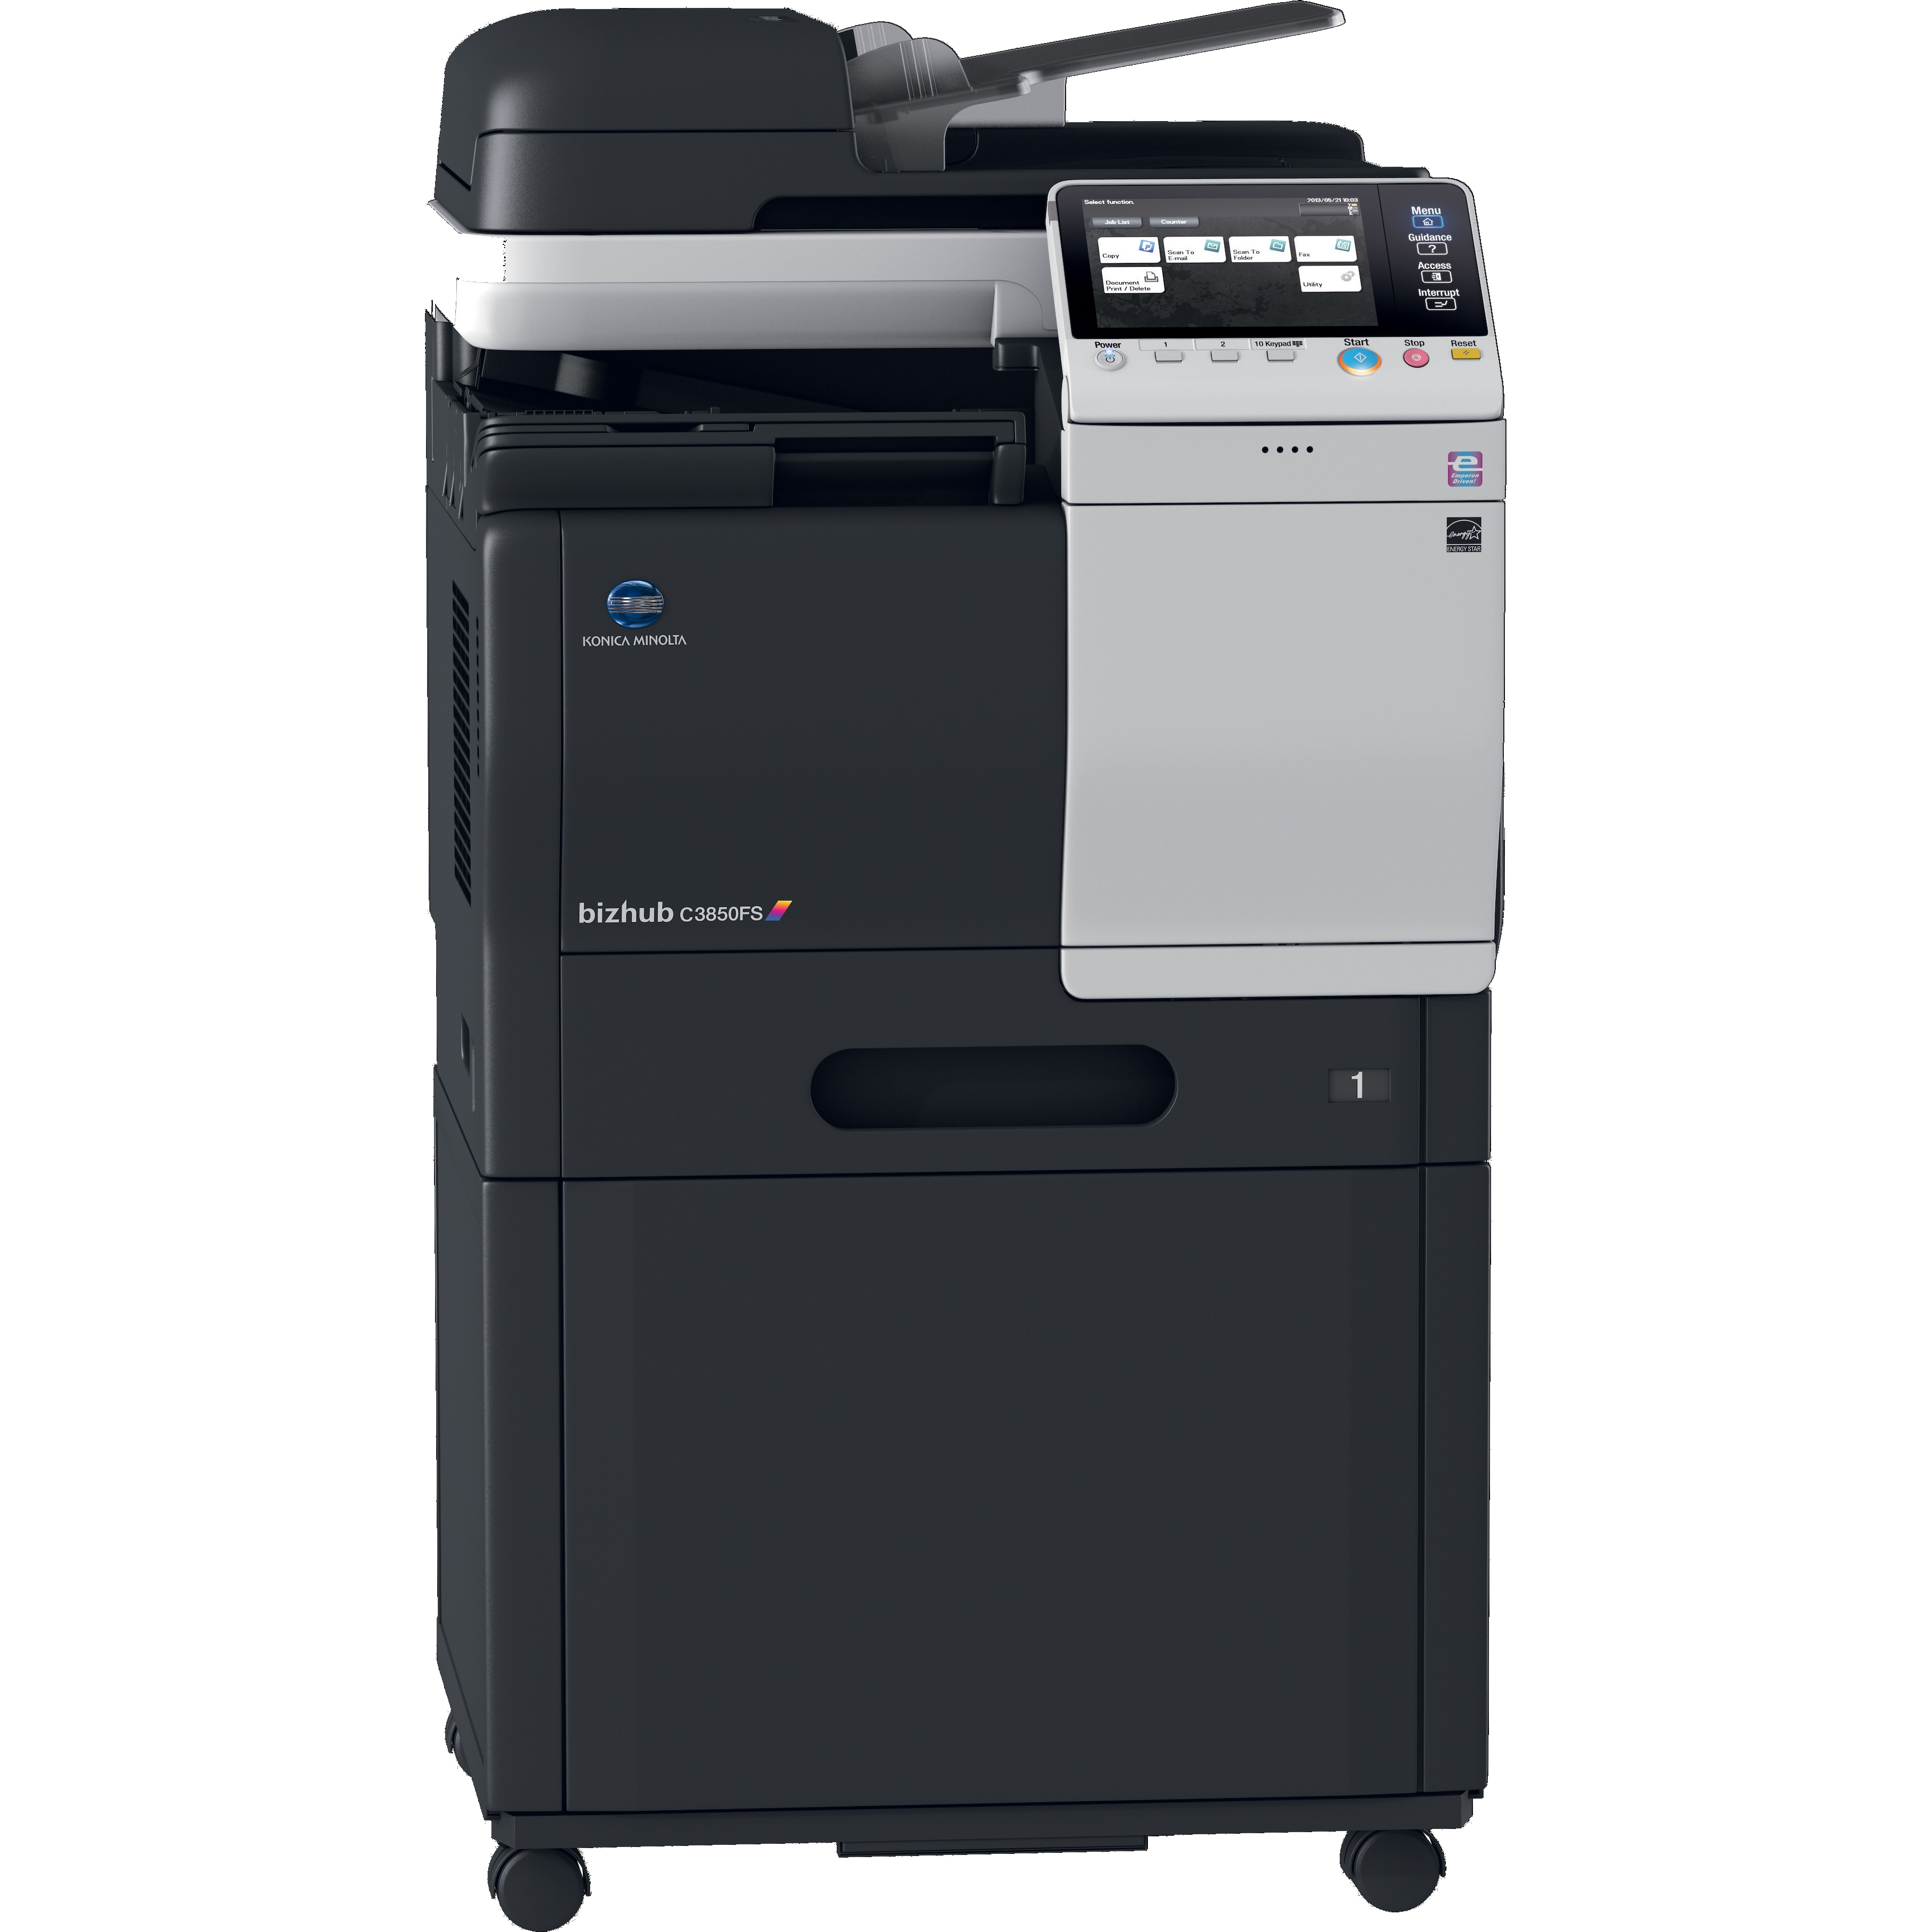 Konica Minolta Bizhub 501 MFP PC-Fax X64 Driver Download